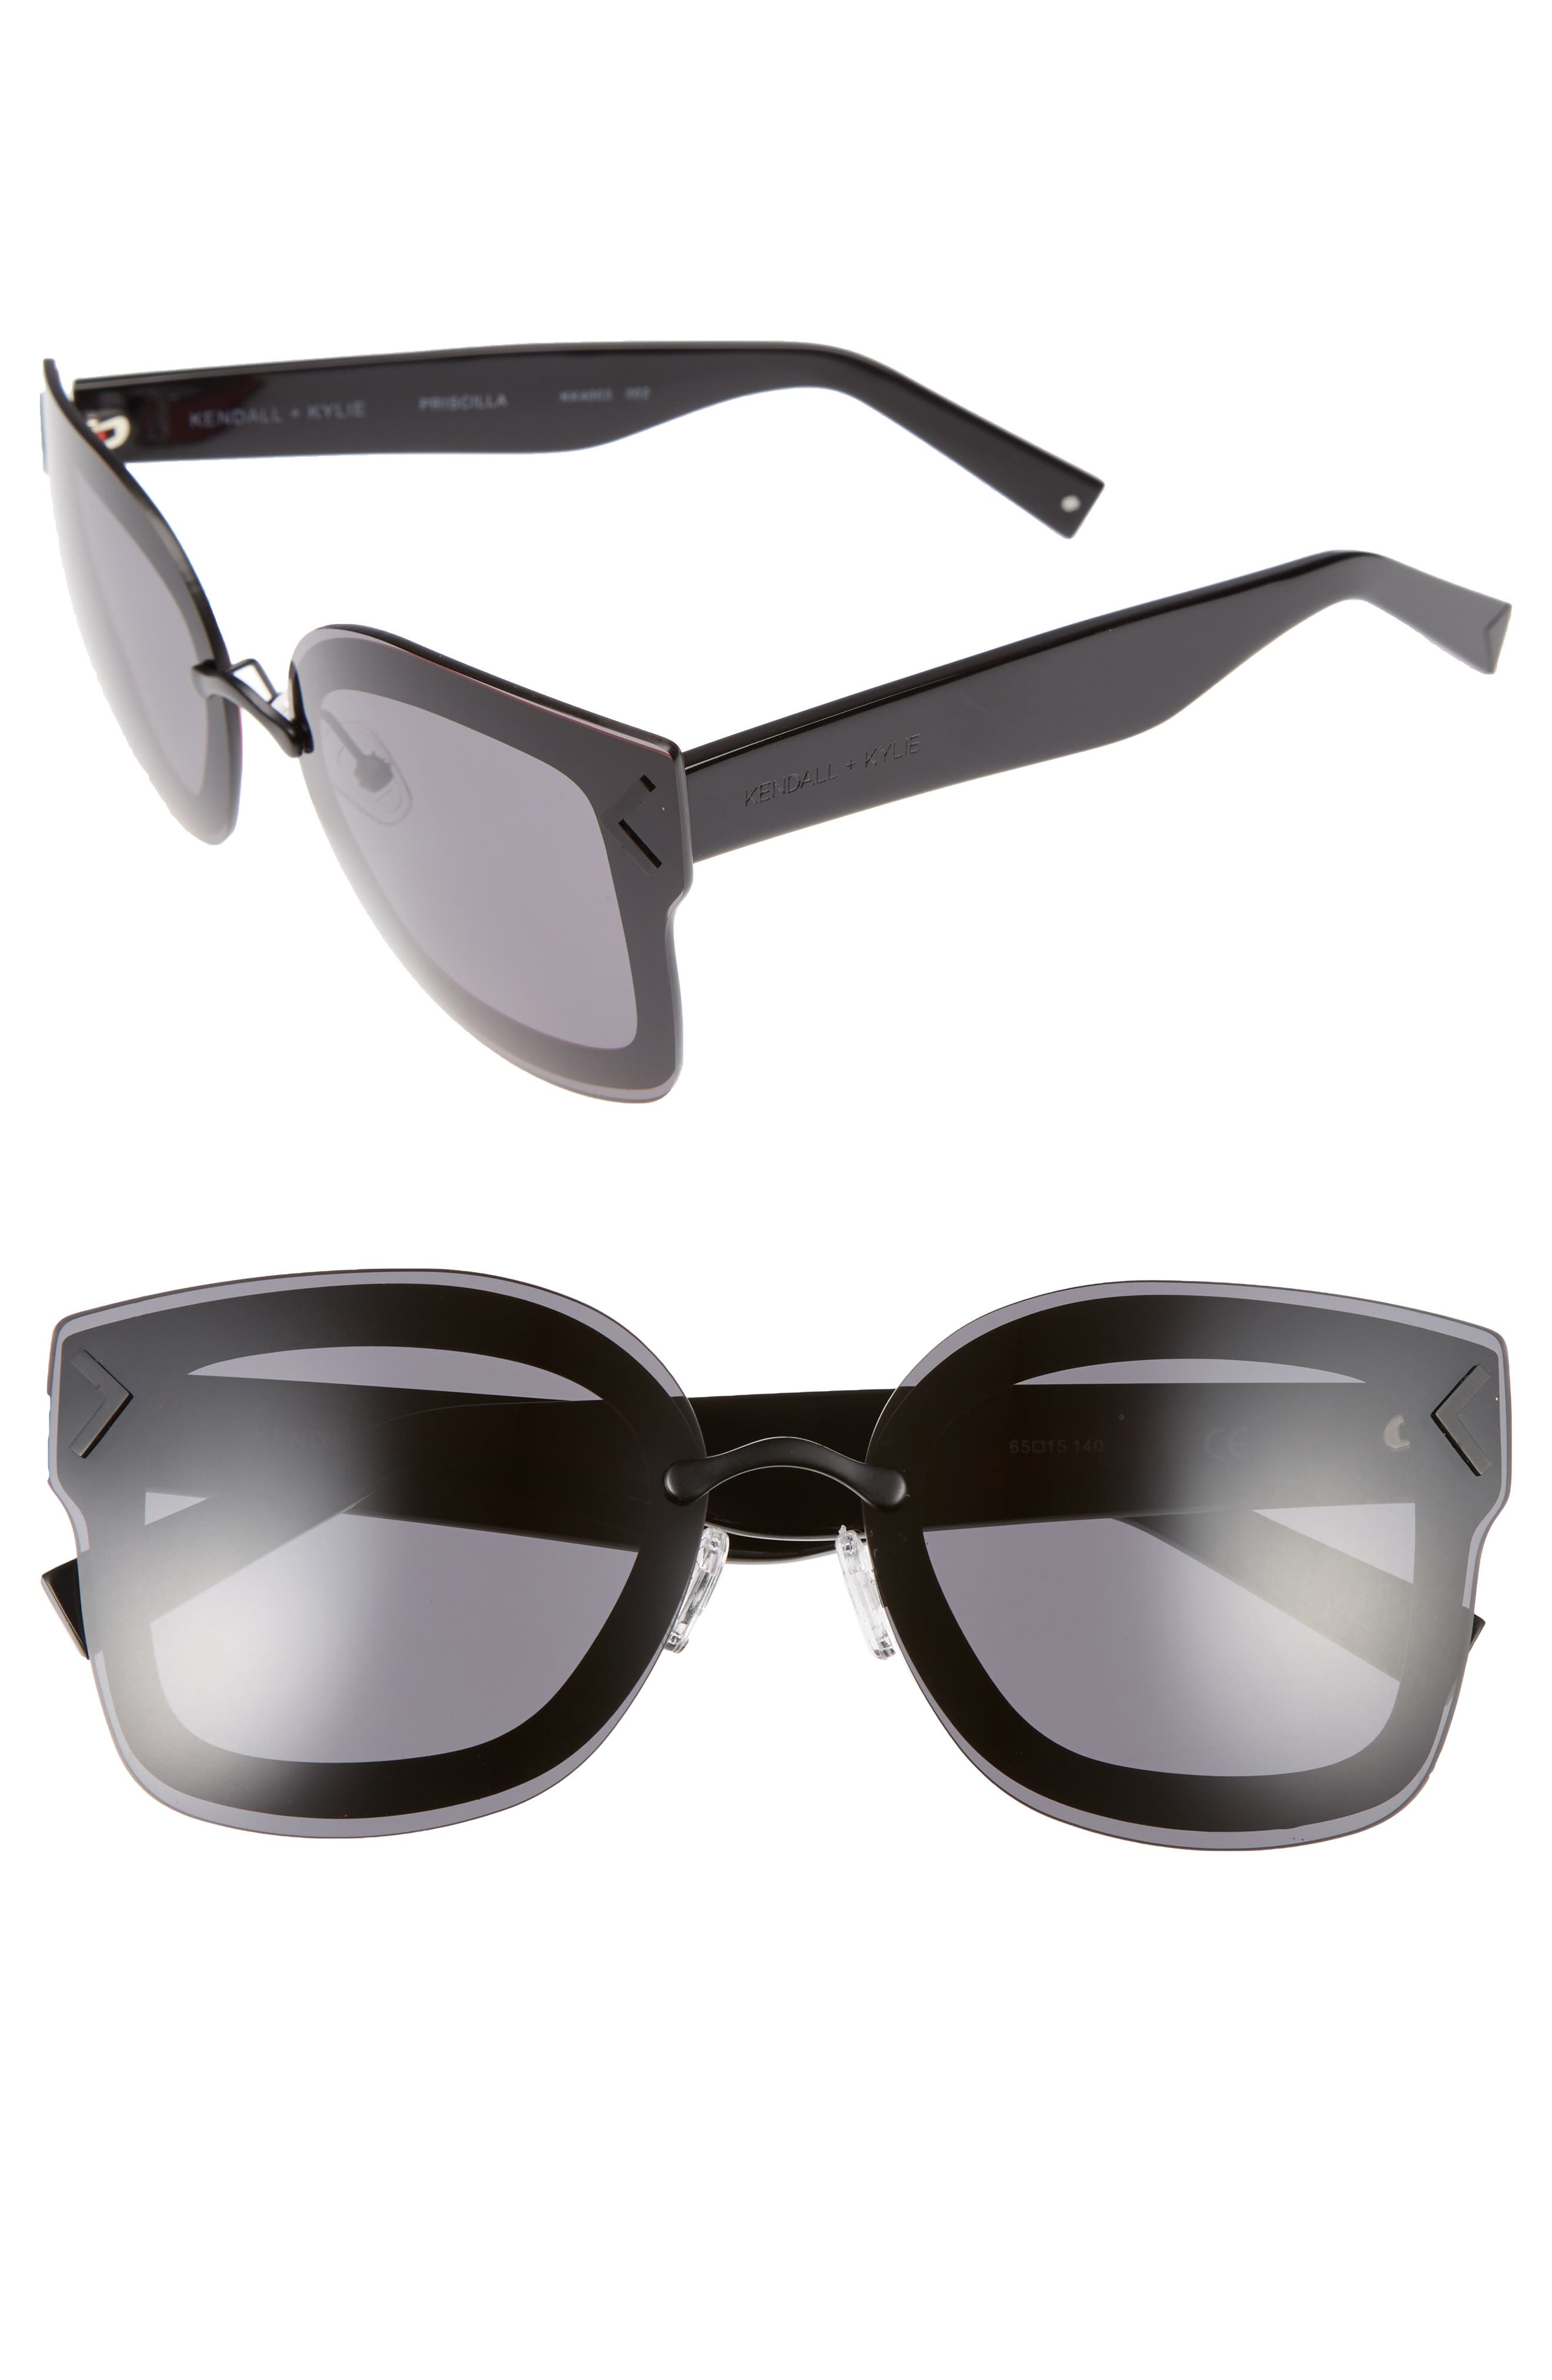 KENDALL + KYLIE Priscilla 65mm Butterfly Sunglasses